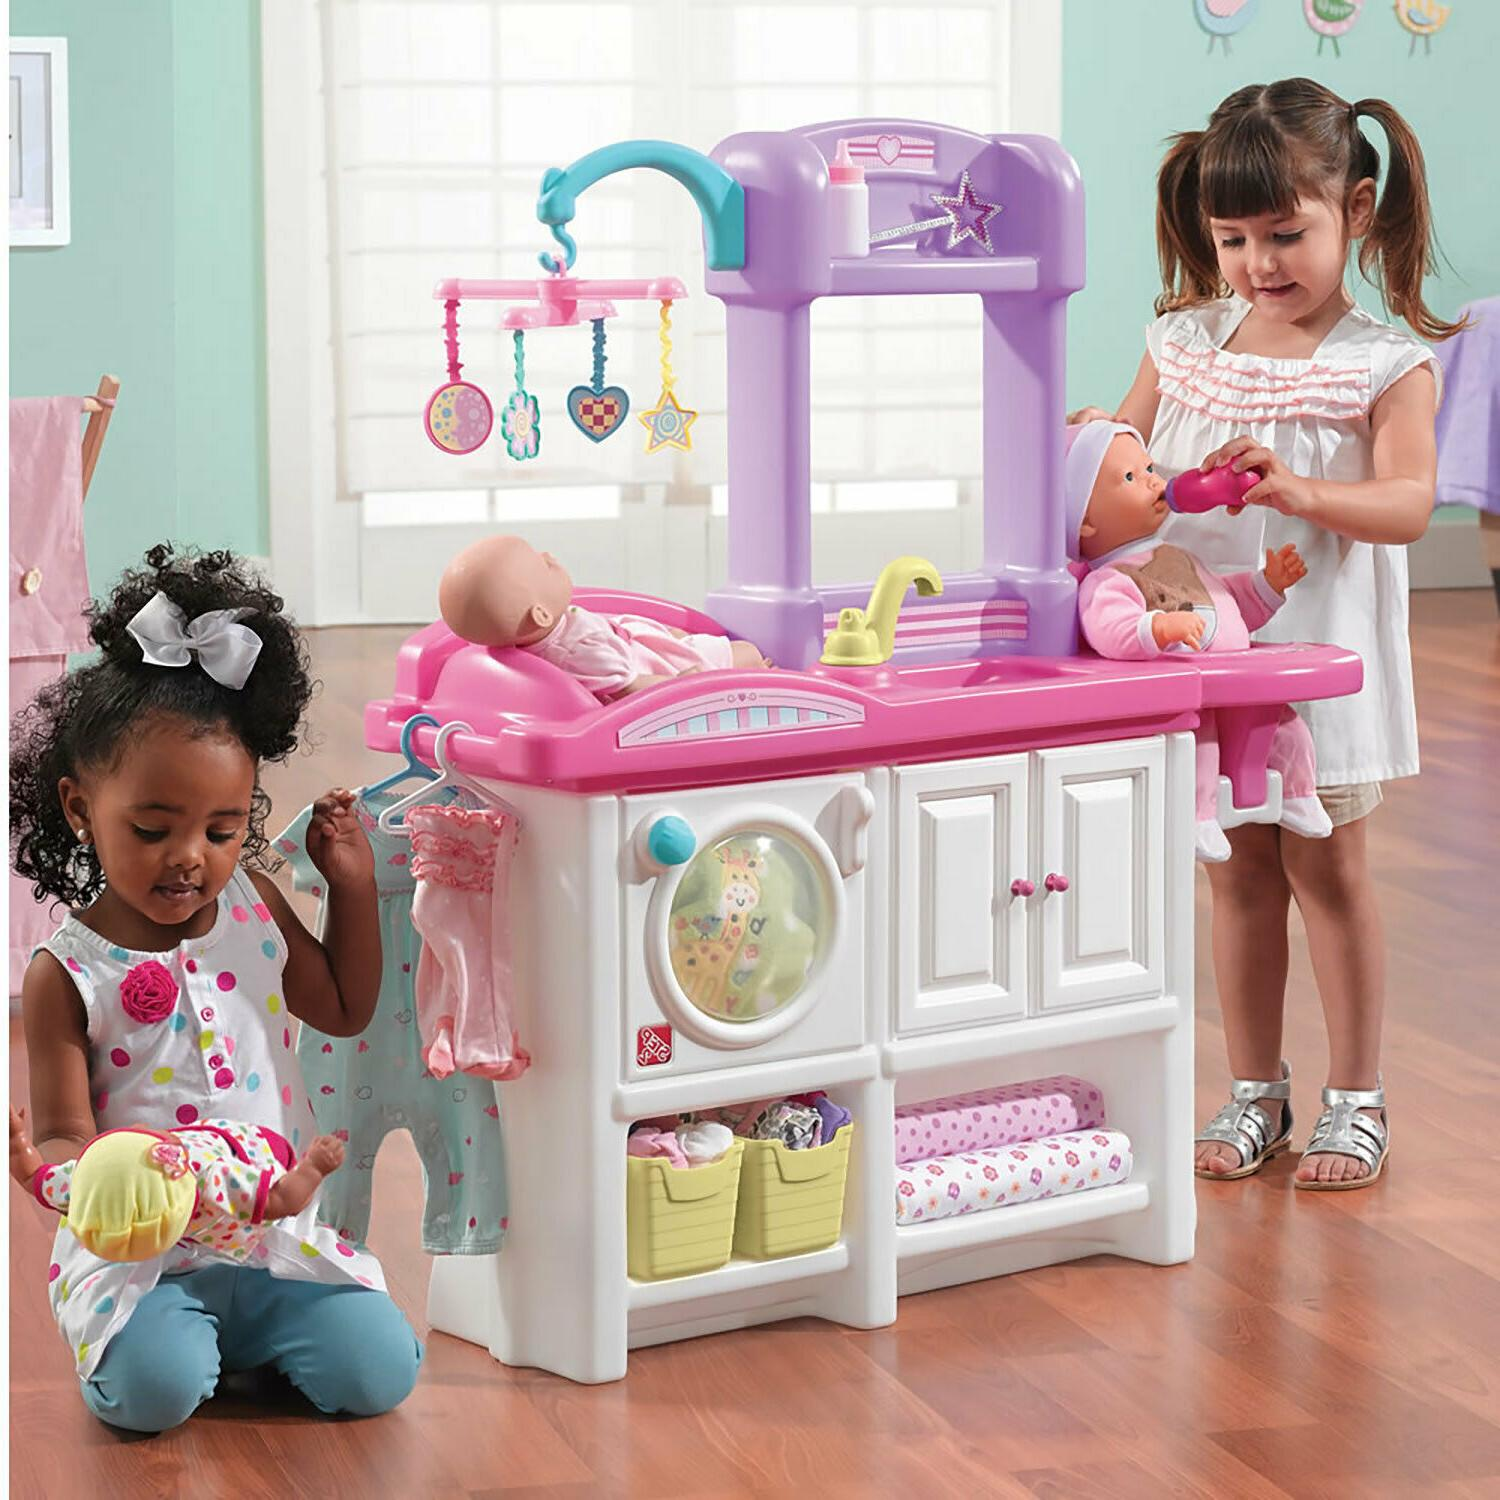 Step2 Deluxe Nursery TOY GIFT